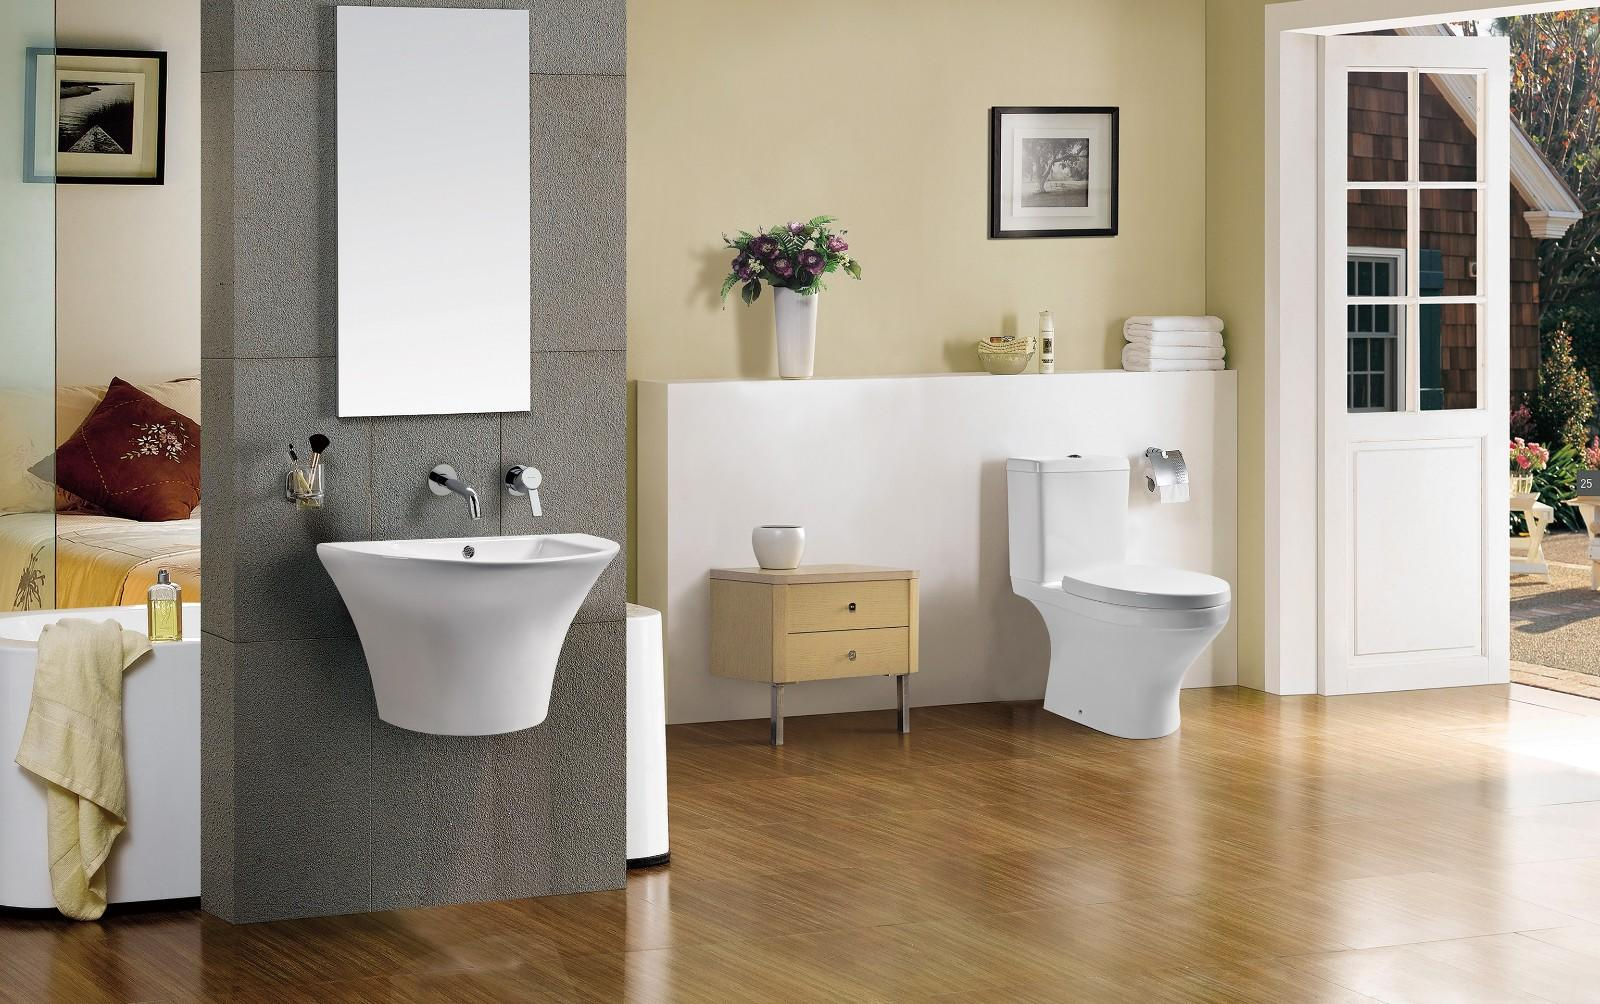 high-quality 1 piece toilet porcelain producer for hotel